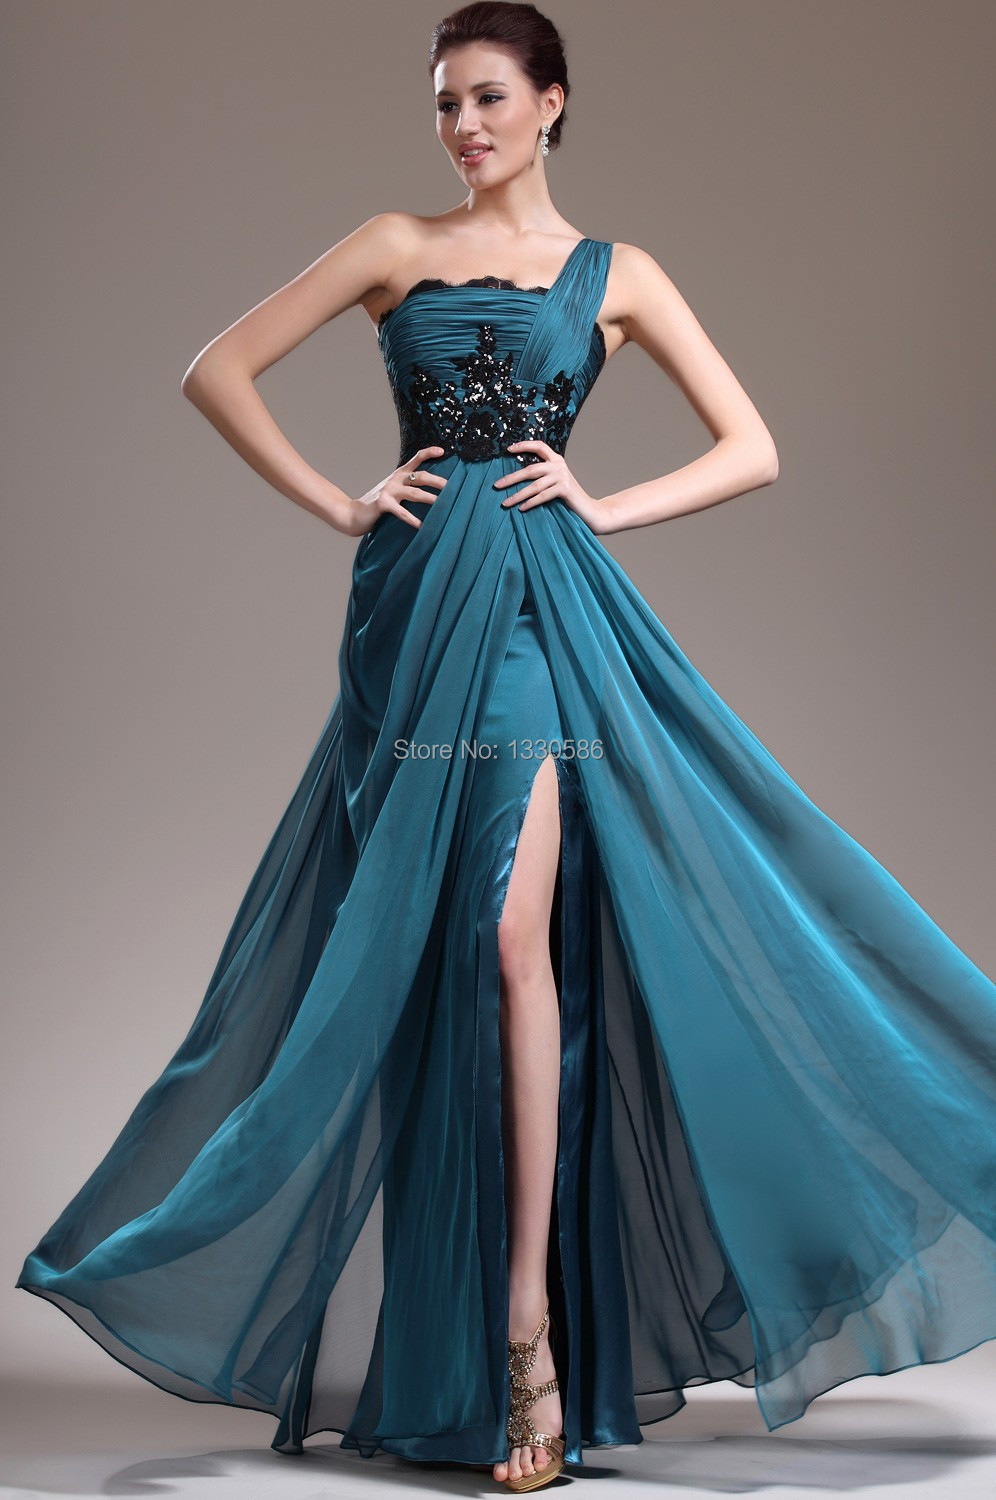 Popular One Shoulder Peacock Prom Dress-Buy Cheap One Shoulder ...